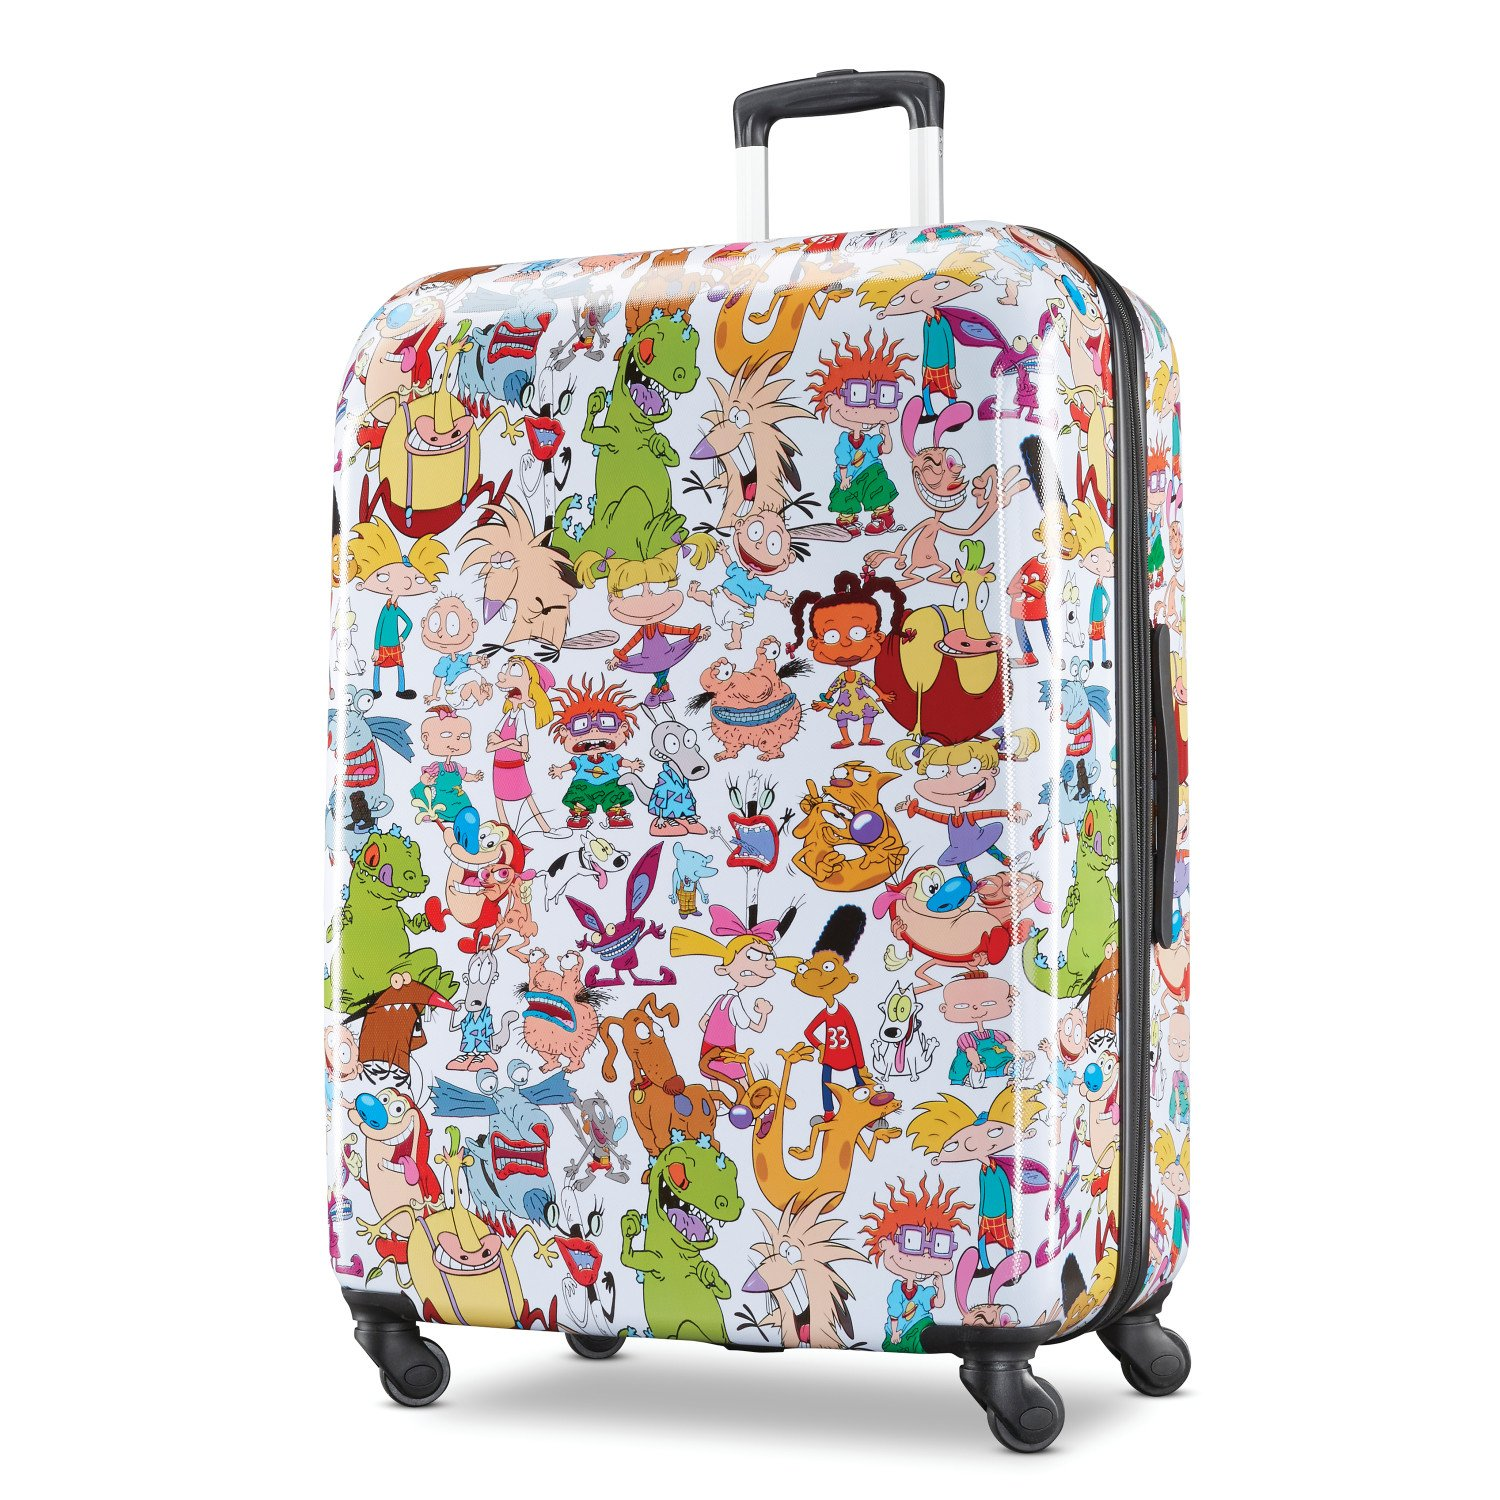 American Tourister Kids' Nickelodeon 90s Mash Up Hardside Spinner 28, White/Orange by American Tourister